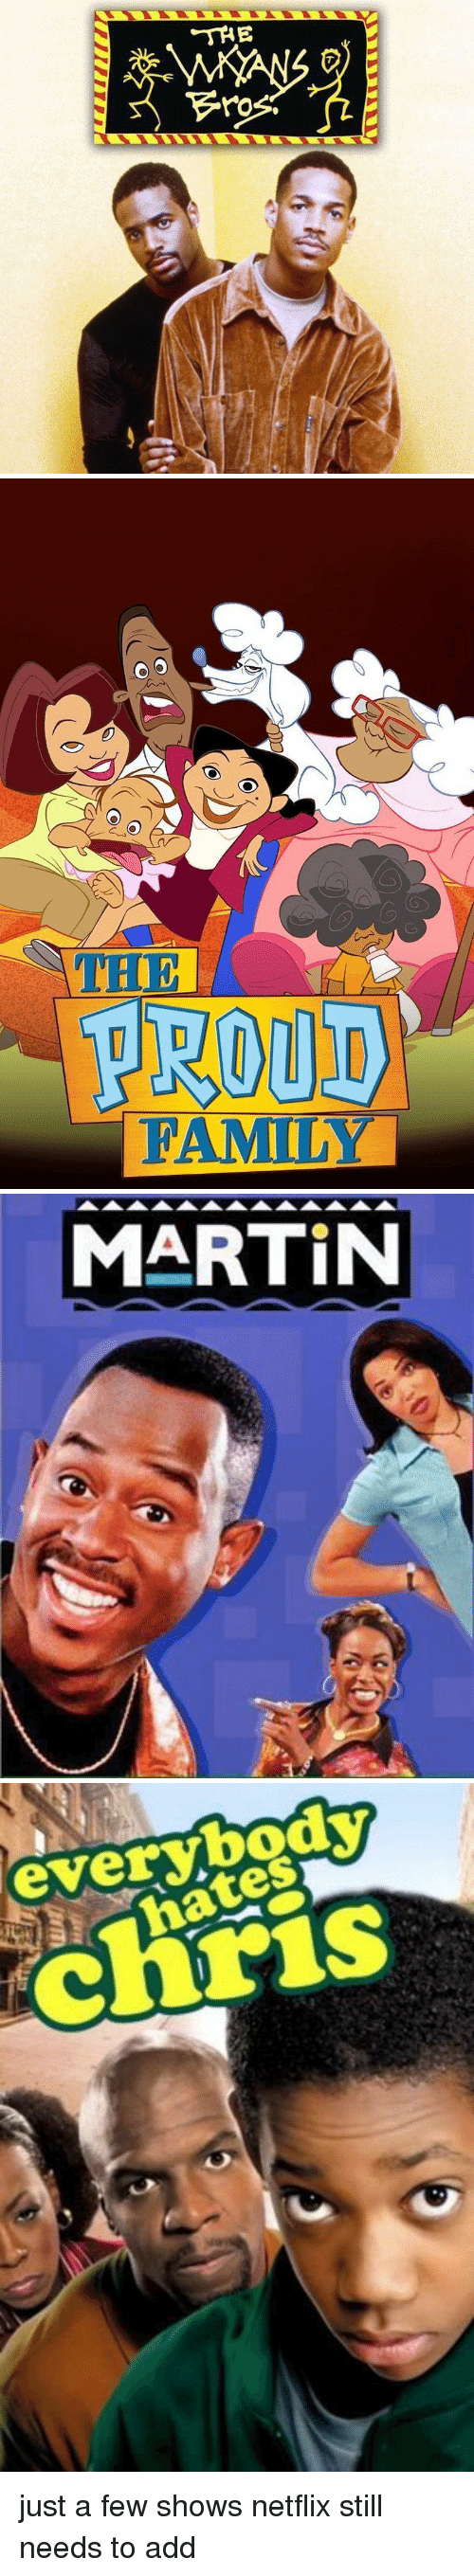 proud family: THE  ro   O O  PROUD  FAMILY   MARTIN   everybody  ates just a few shows netflix still needs to add